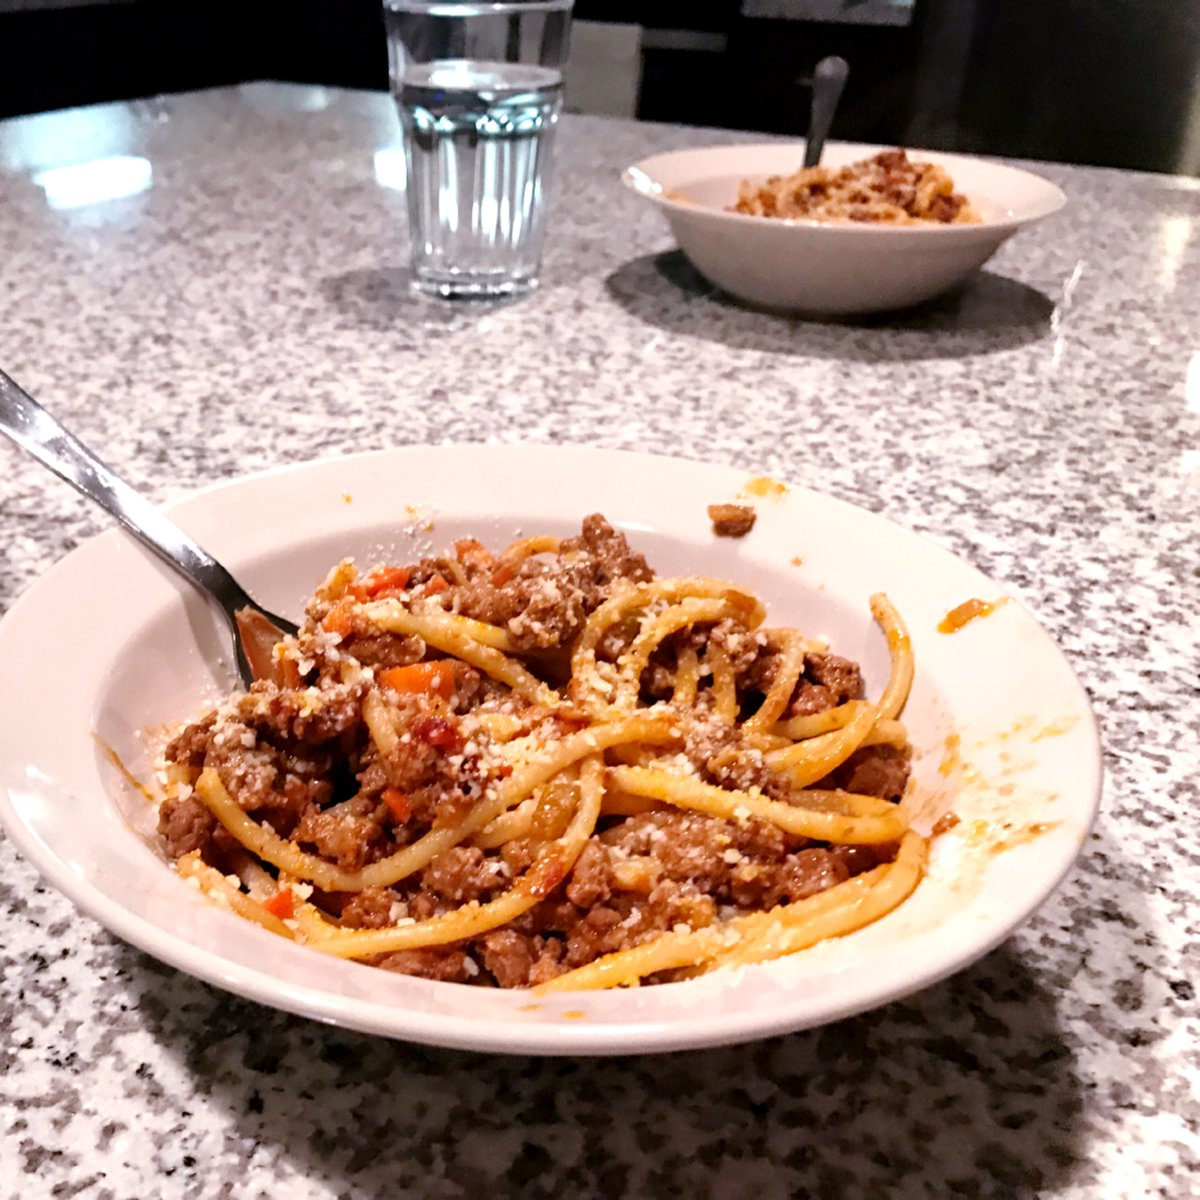 Blue apron bucatini - Eliora Bruschweiler On Twitter Bucatini Pasta Bolognese With Brussels Sprouts Blueapron Https T Co U9xqccipos